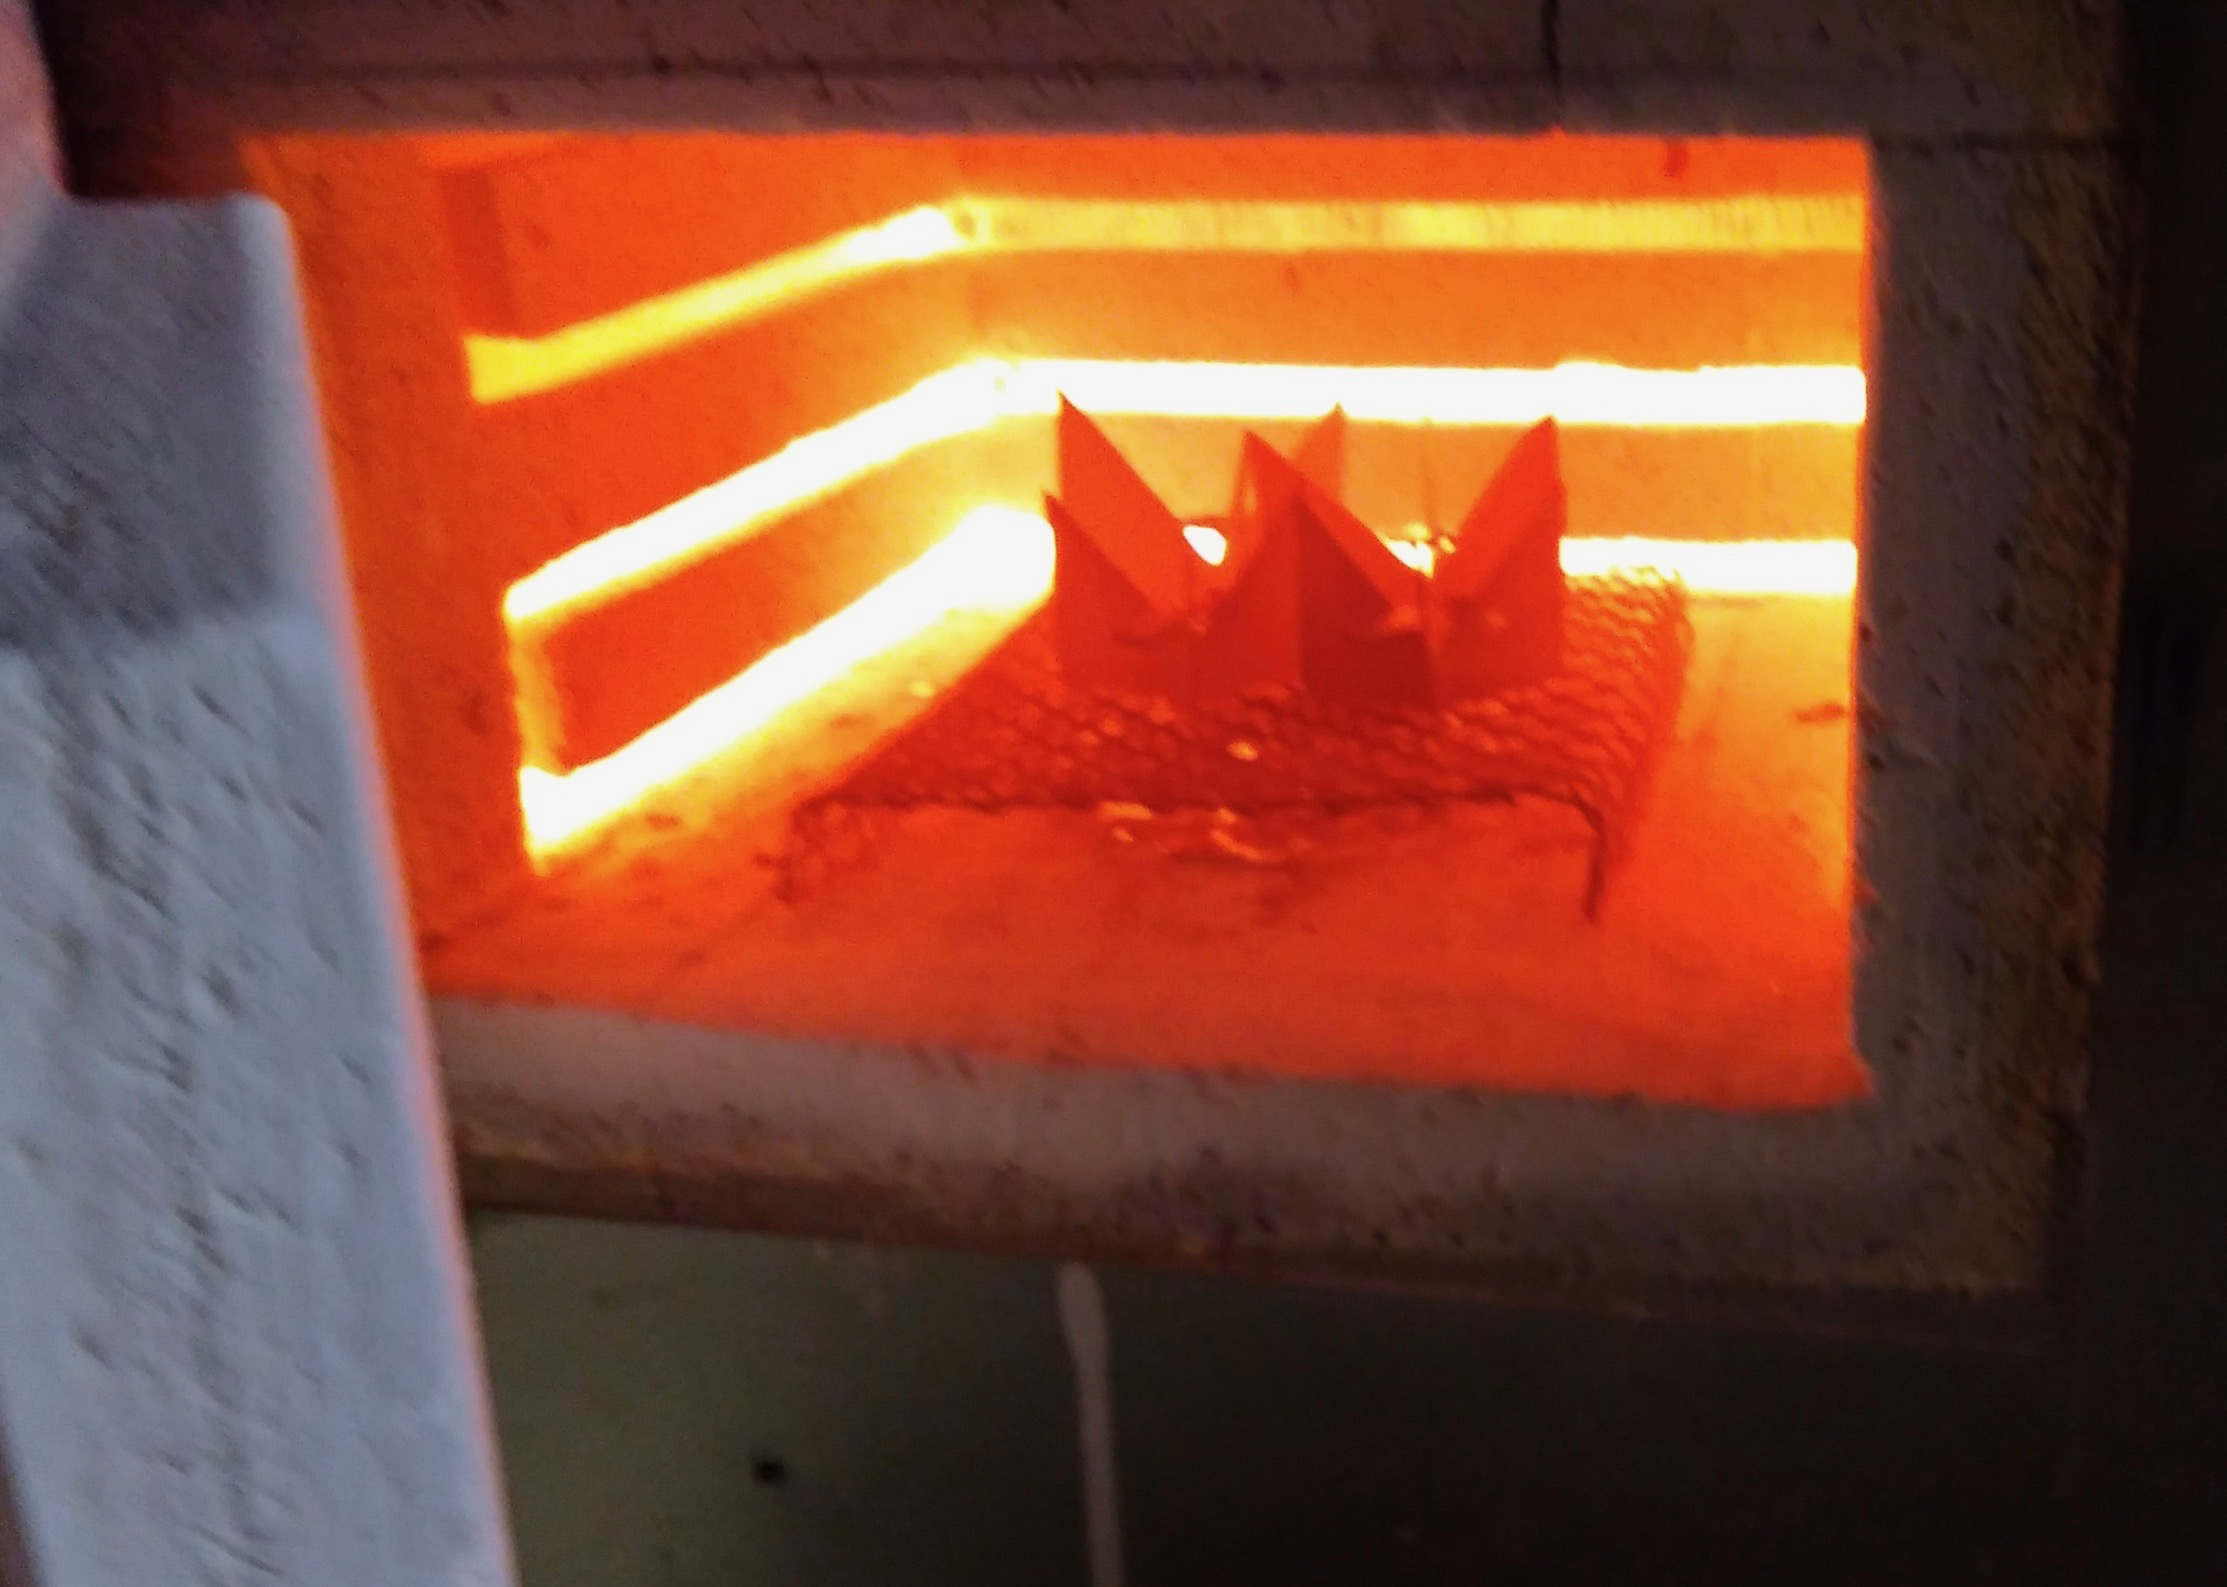 enamel pieces being fired inside one of my kilns that my father used to use